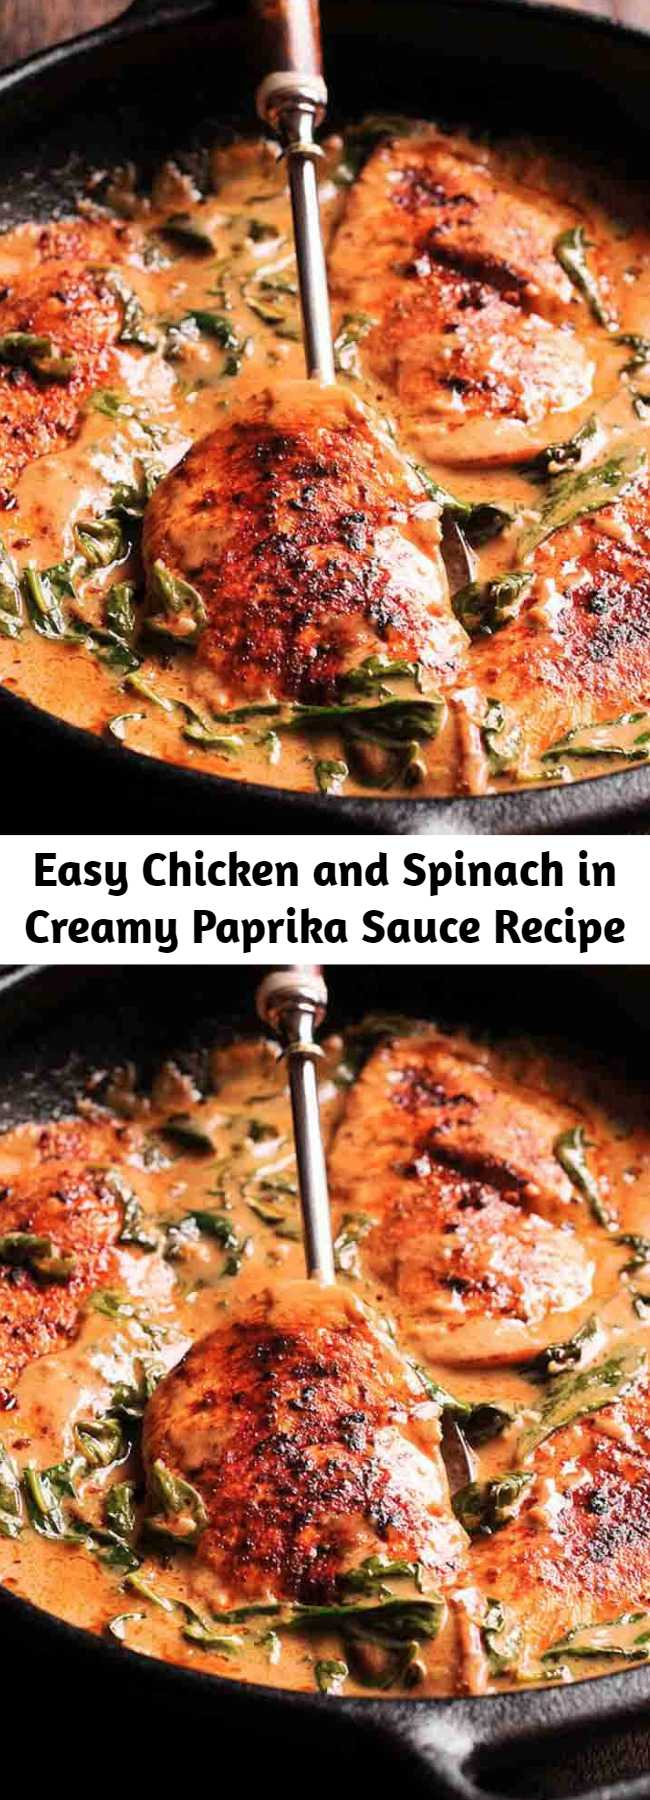 Easy Chicken and Spinach in Creamy Paprika Sauce Recipe - Chicken and Spinach in Creamy Paprika Sauce is an amazing one-pan dish with an amazing flavor from white wine and mild tang from the fresh lemon juice.